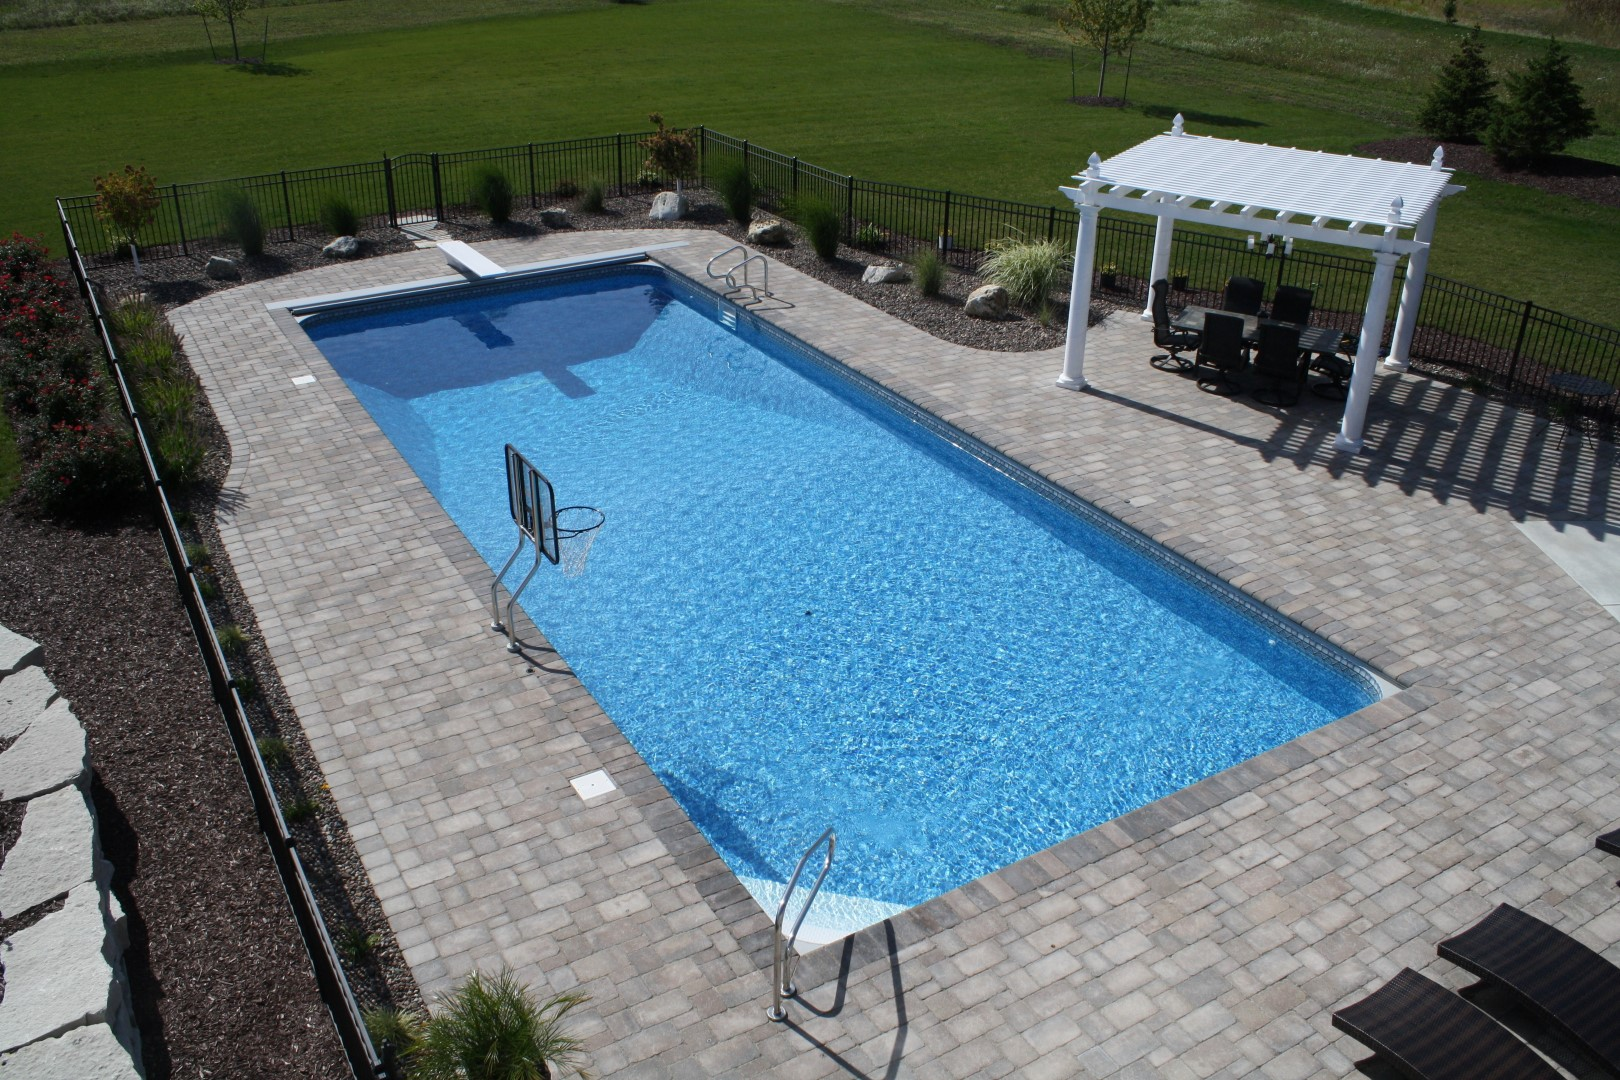 Inground Swimming Pool Builders In Waukesha Wi And Minneapolis Mn Vinyl Fiberglass And